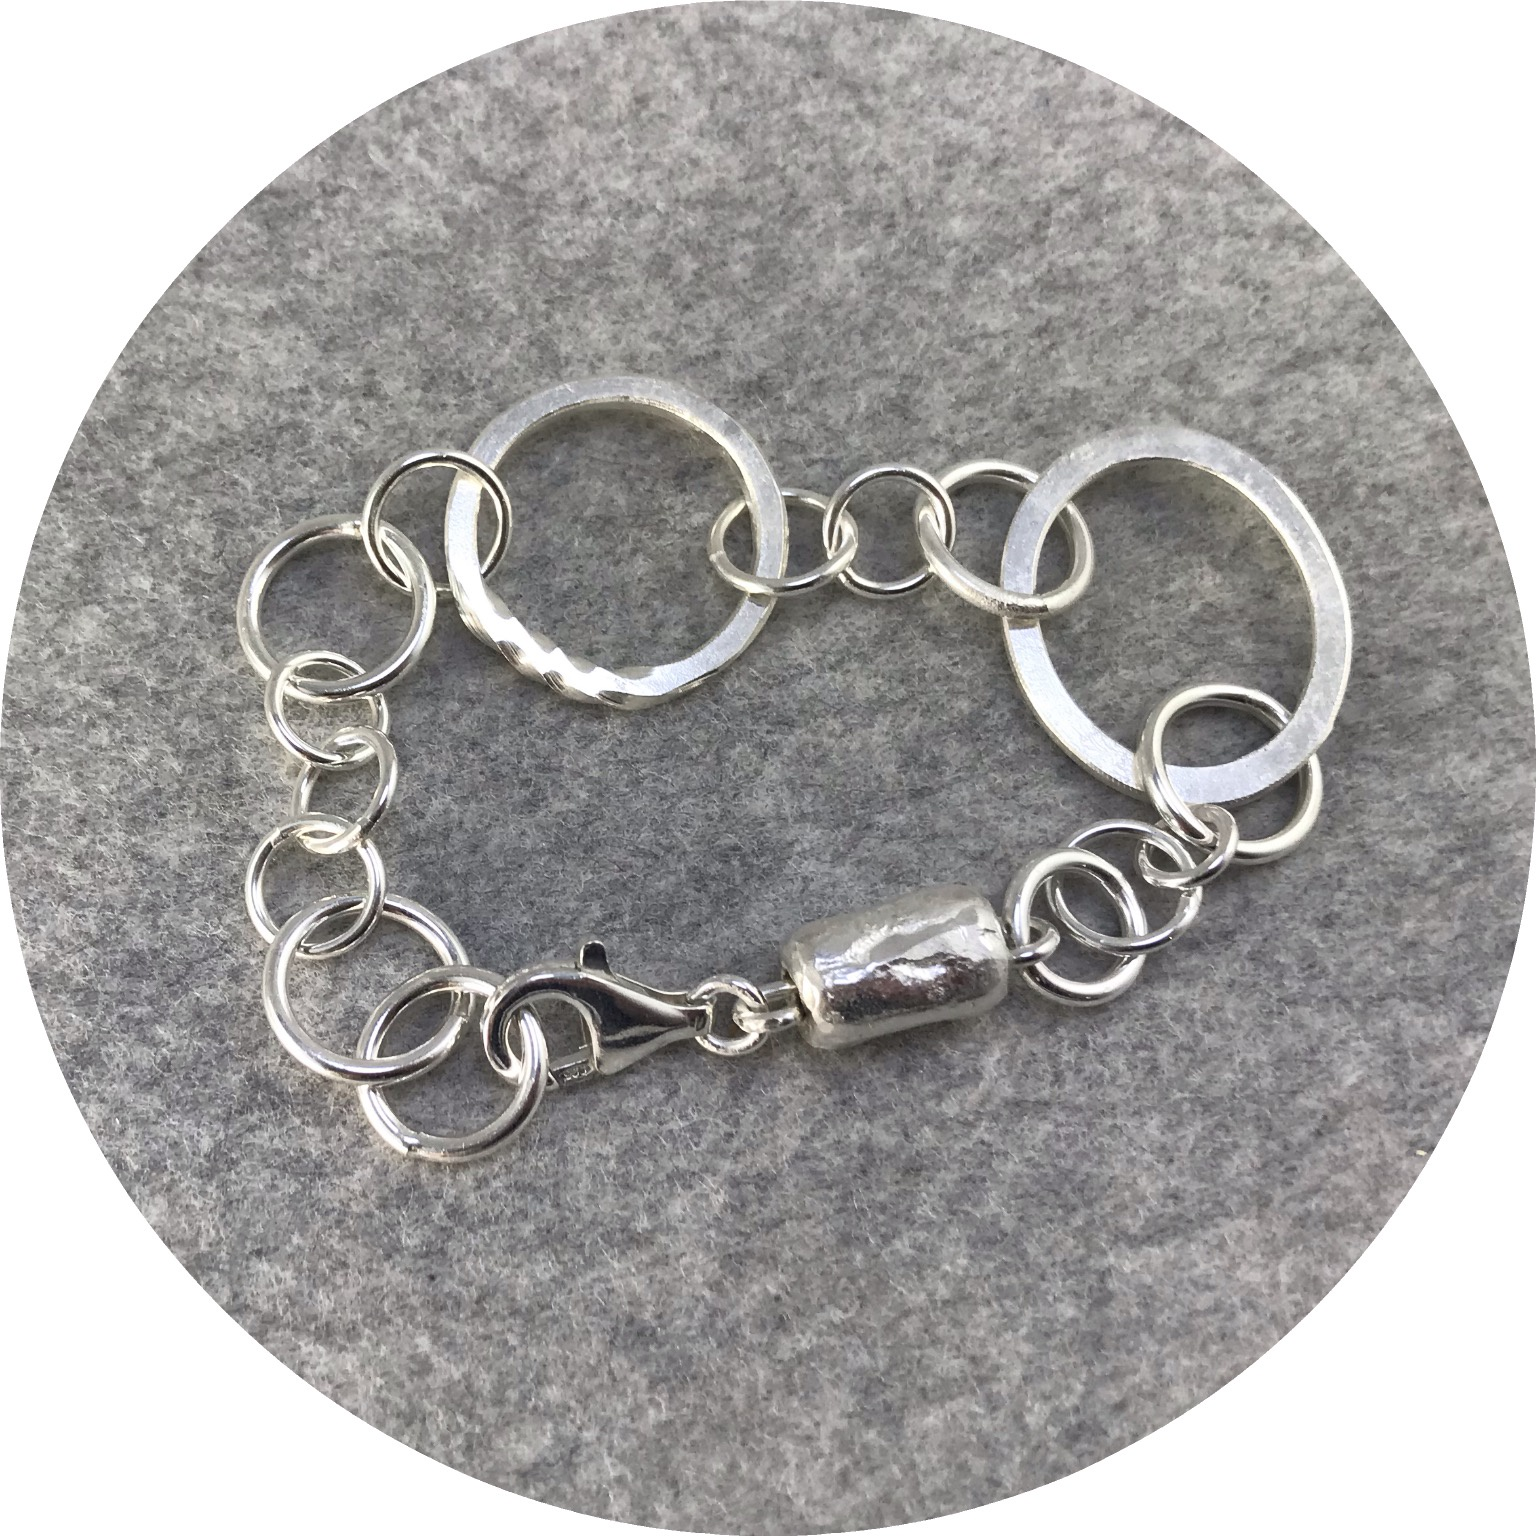 Ellinor Mazza - 'Chain Bracelet with Bead', 925 silver, 999 silver